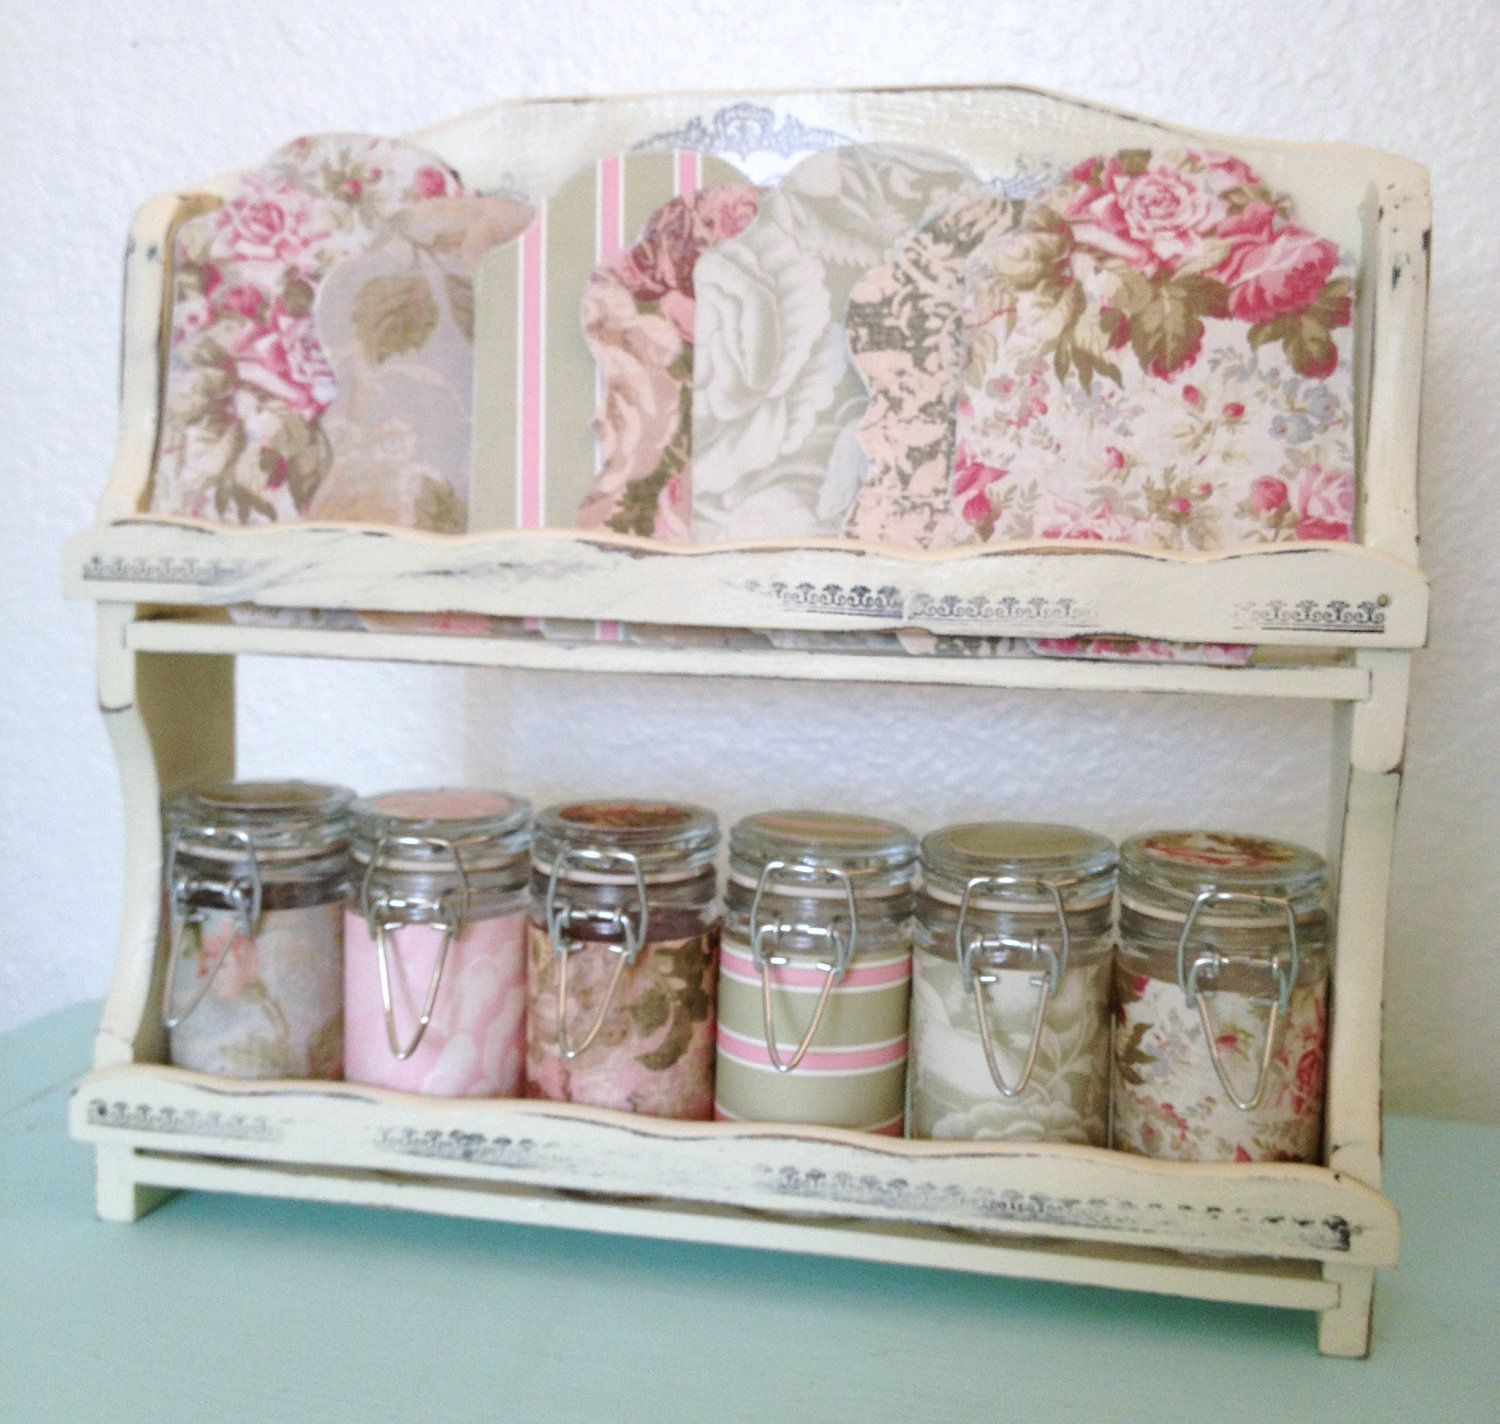 Shabby chic crafts to make - Shabby Chic Craft Sewing Room Vintage Storage By Fifisfactory 30 00